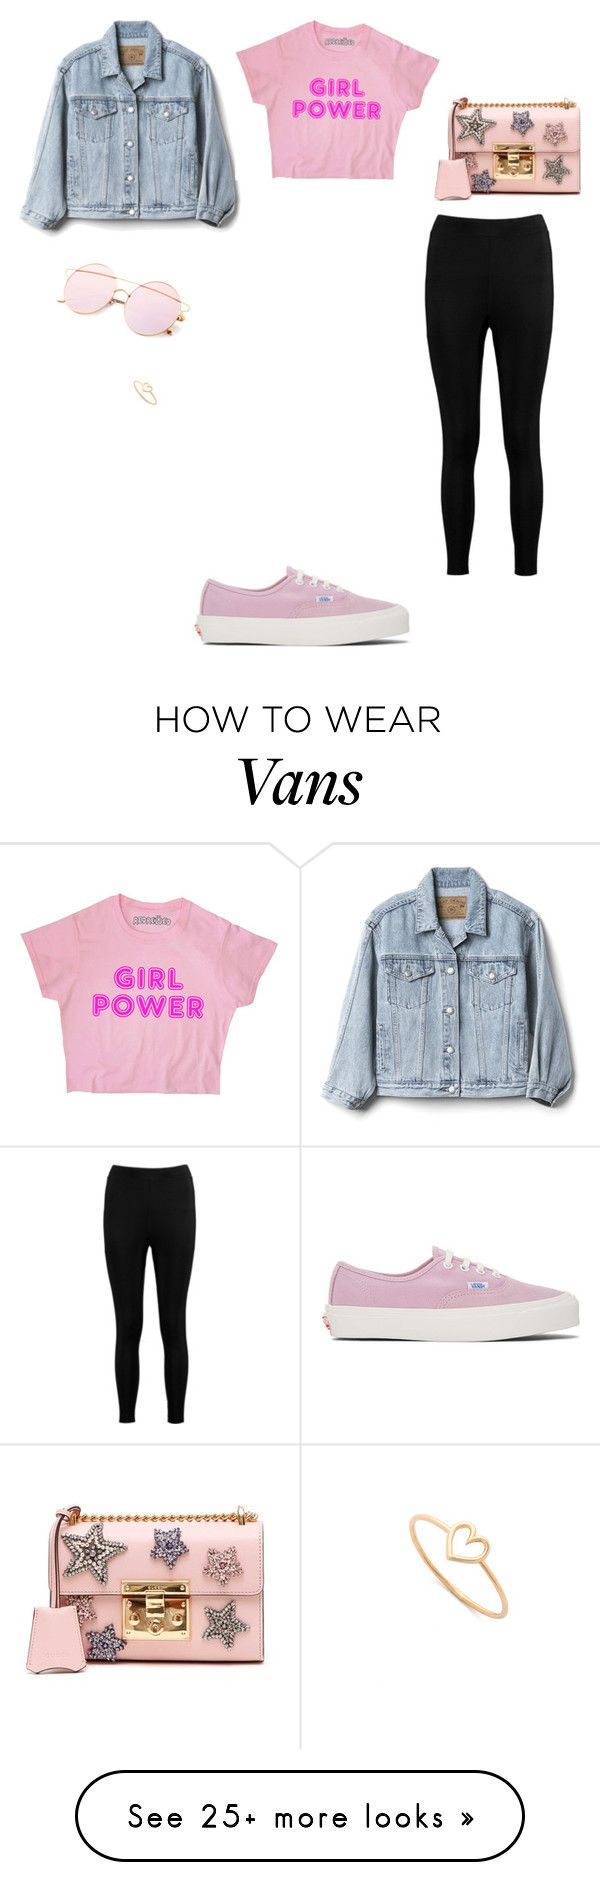 """Untitled #4037"" by anamaria-zgimbau on Polyvore featuring Vans, Gap, Boohoo, Gucci and Aurélie Bidermann"